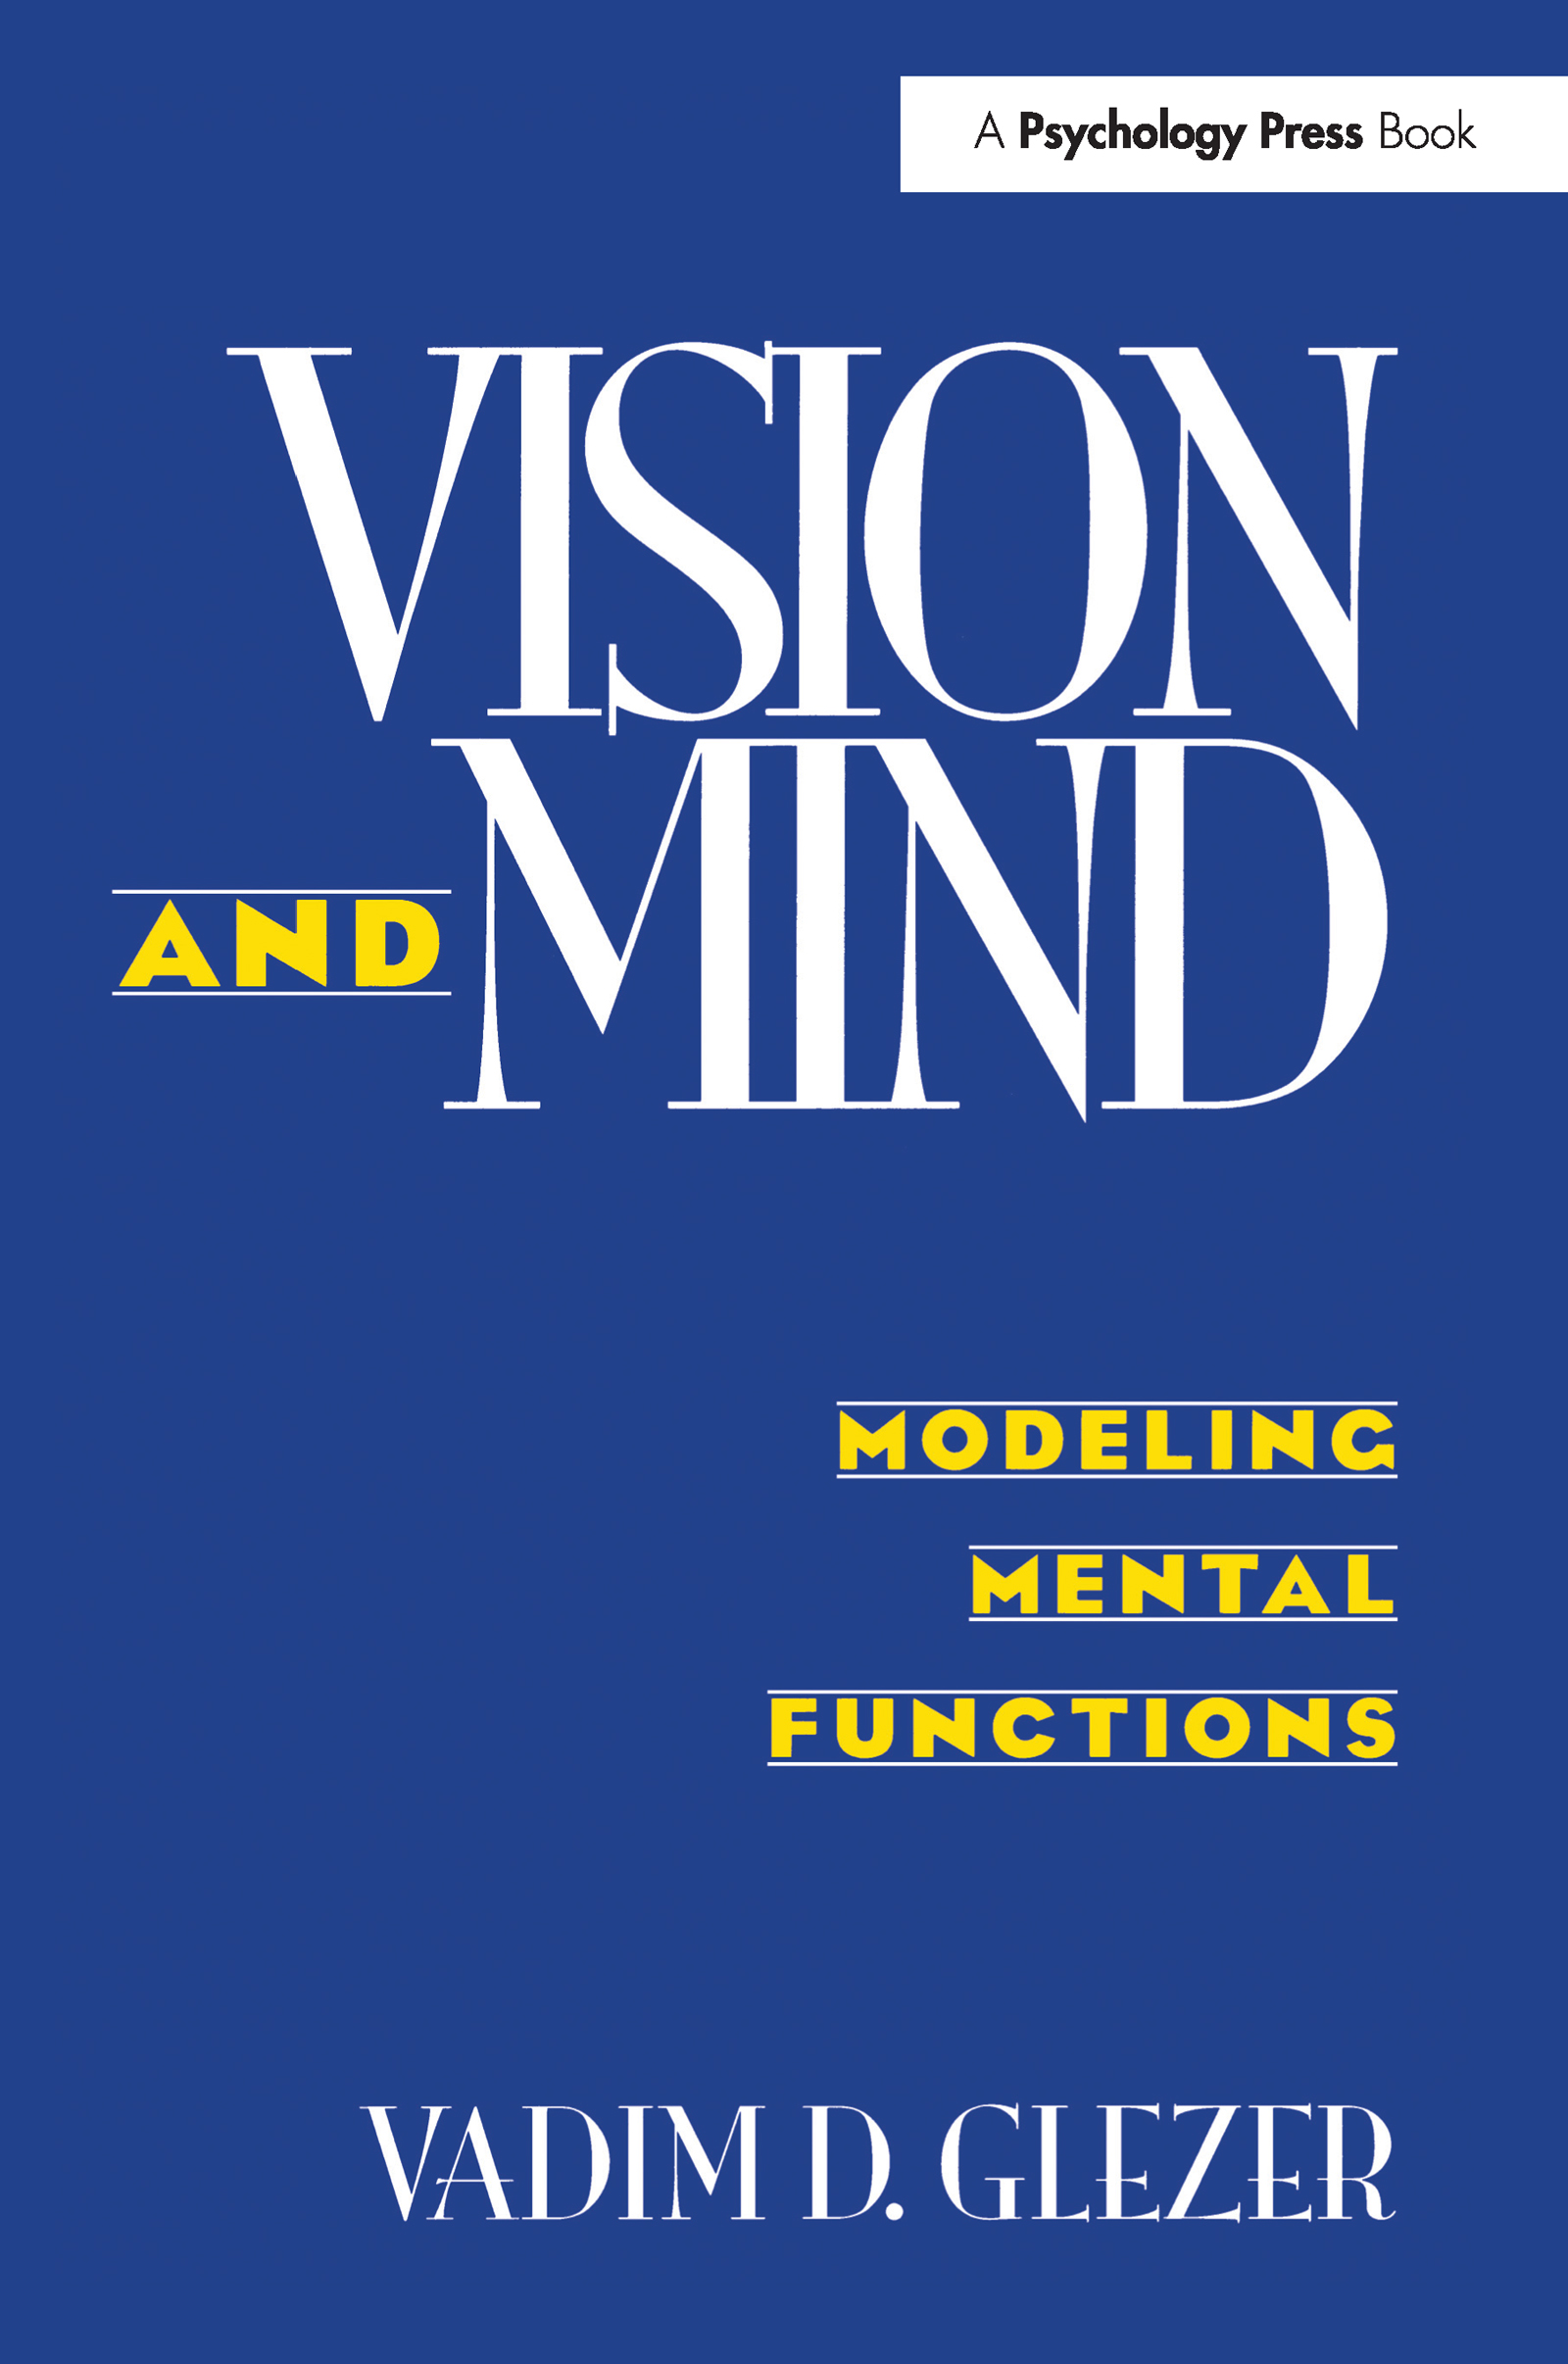 Vision and Mind: Modeling Mental Functions book cover